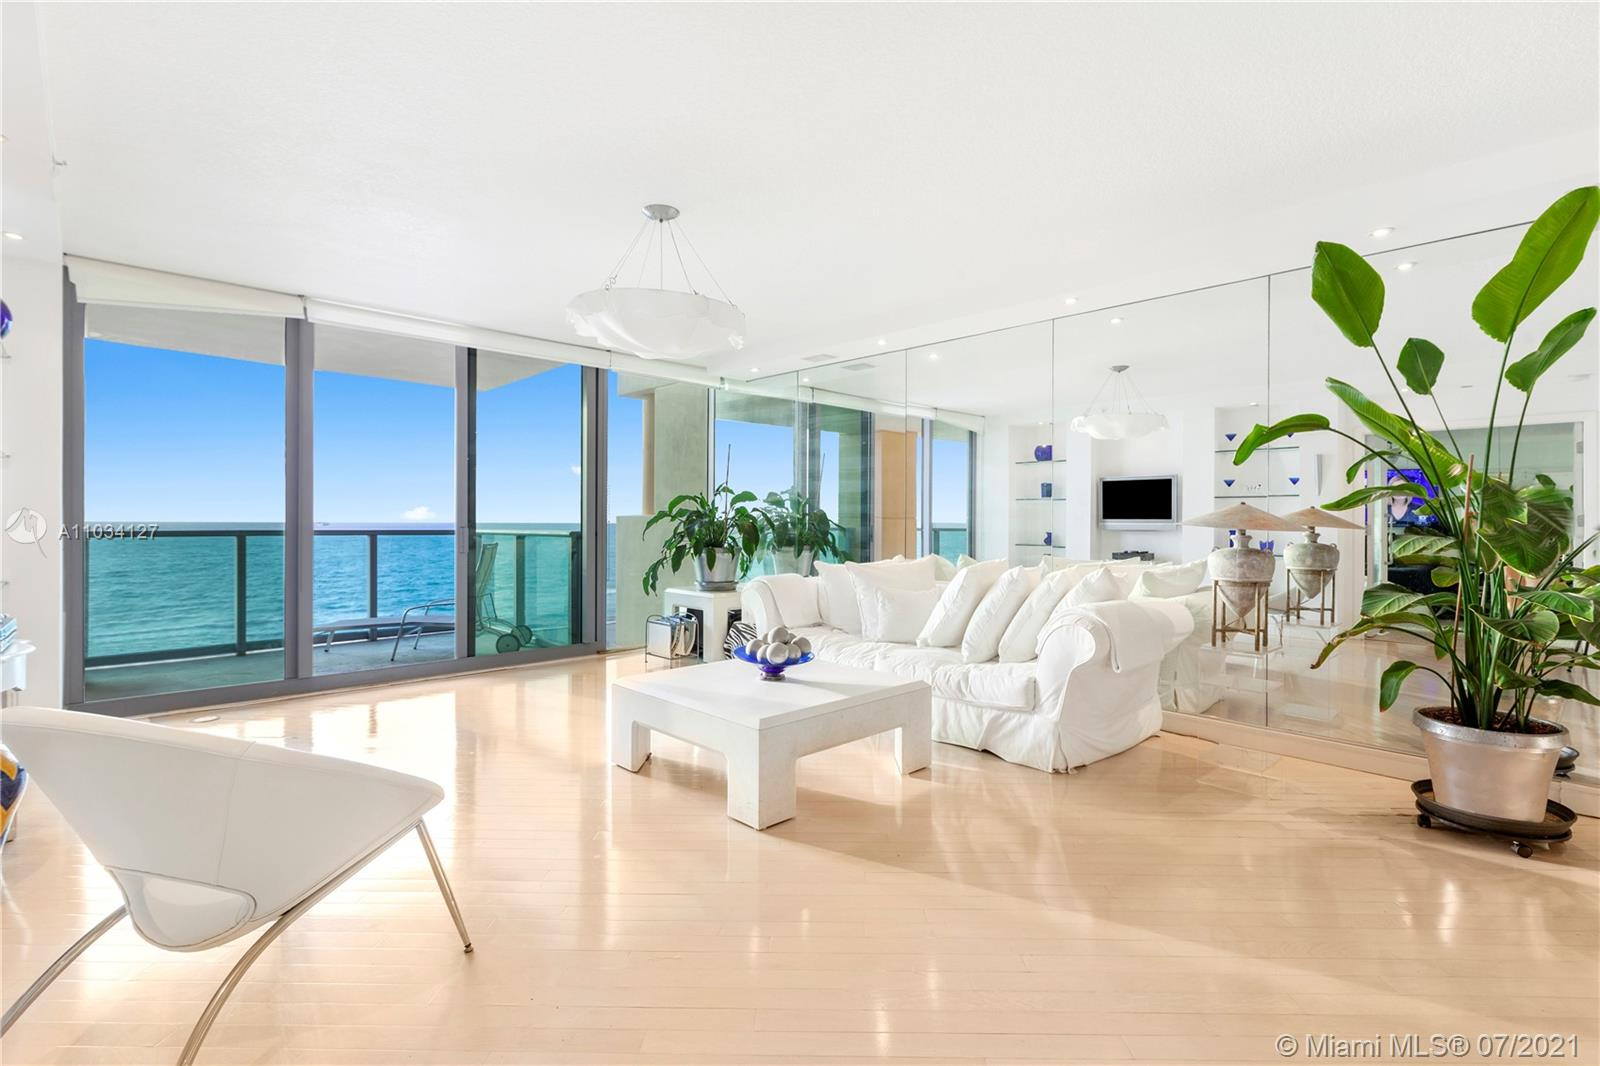 Start your dolce vita  at ll Villaggio, the finest oceanfront residence in South Beach. Enjoy sweeping views from this high floor, 3-bed / 3-bath unit with floor-to-ceiling glass and private elevator entrance. Watch the sunrise over the Atlantic from a generous east-facing terrace. Two west-facing terraces offer sunset & city views. The flow-through layout provides plenty of room for relaxing & entertaining, ample storage, and large laundry area. Il Villaggio is a full-service, luxury building with valet, 24-hour security, 2-story fitness center, pool & private beach club. Stroll along the beach to South Pointe Park or head north 3 blocks to Lincoln Road. After enjoying all the fun & fine dining Sobe has to offer, return to a serene oasis with a superb staff waiting to welcome you home.